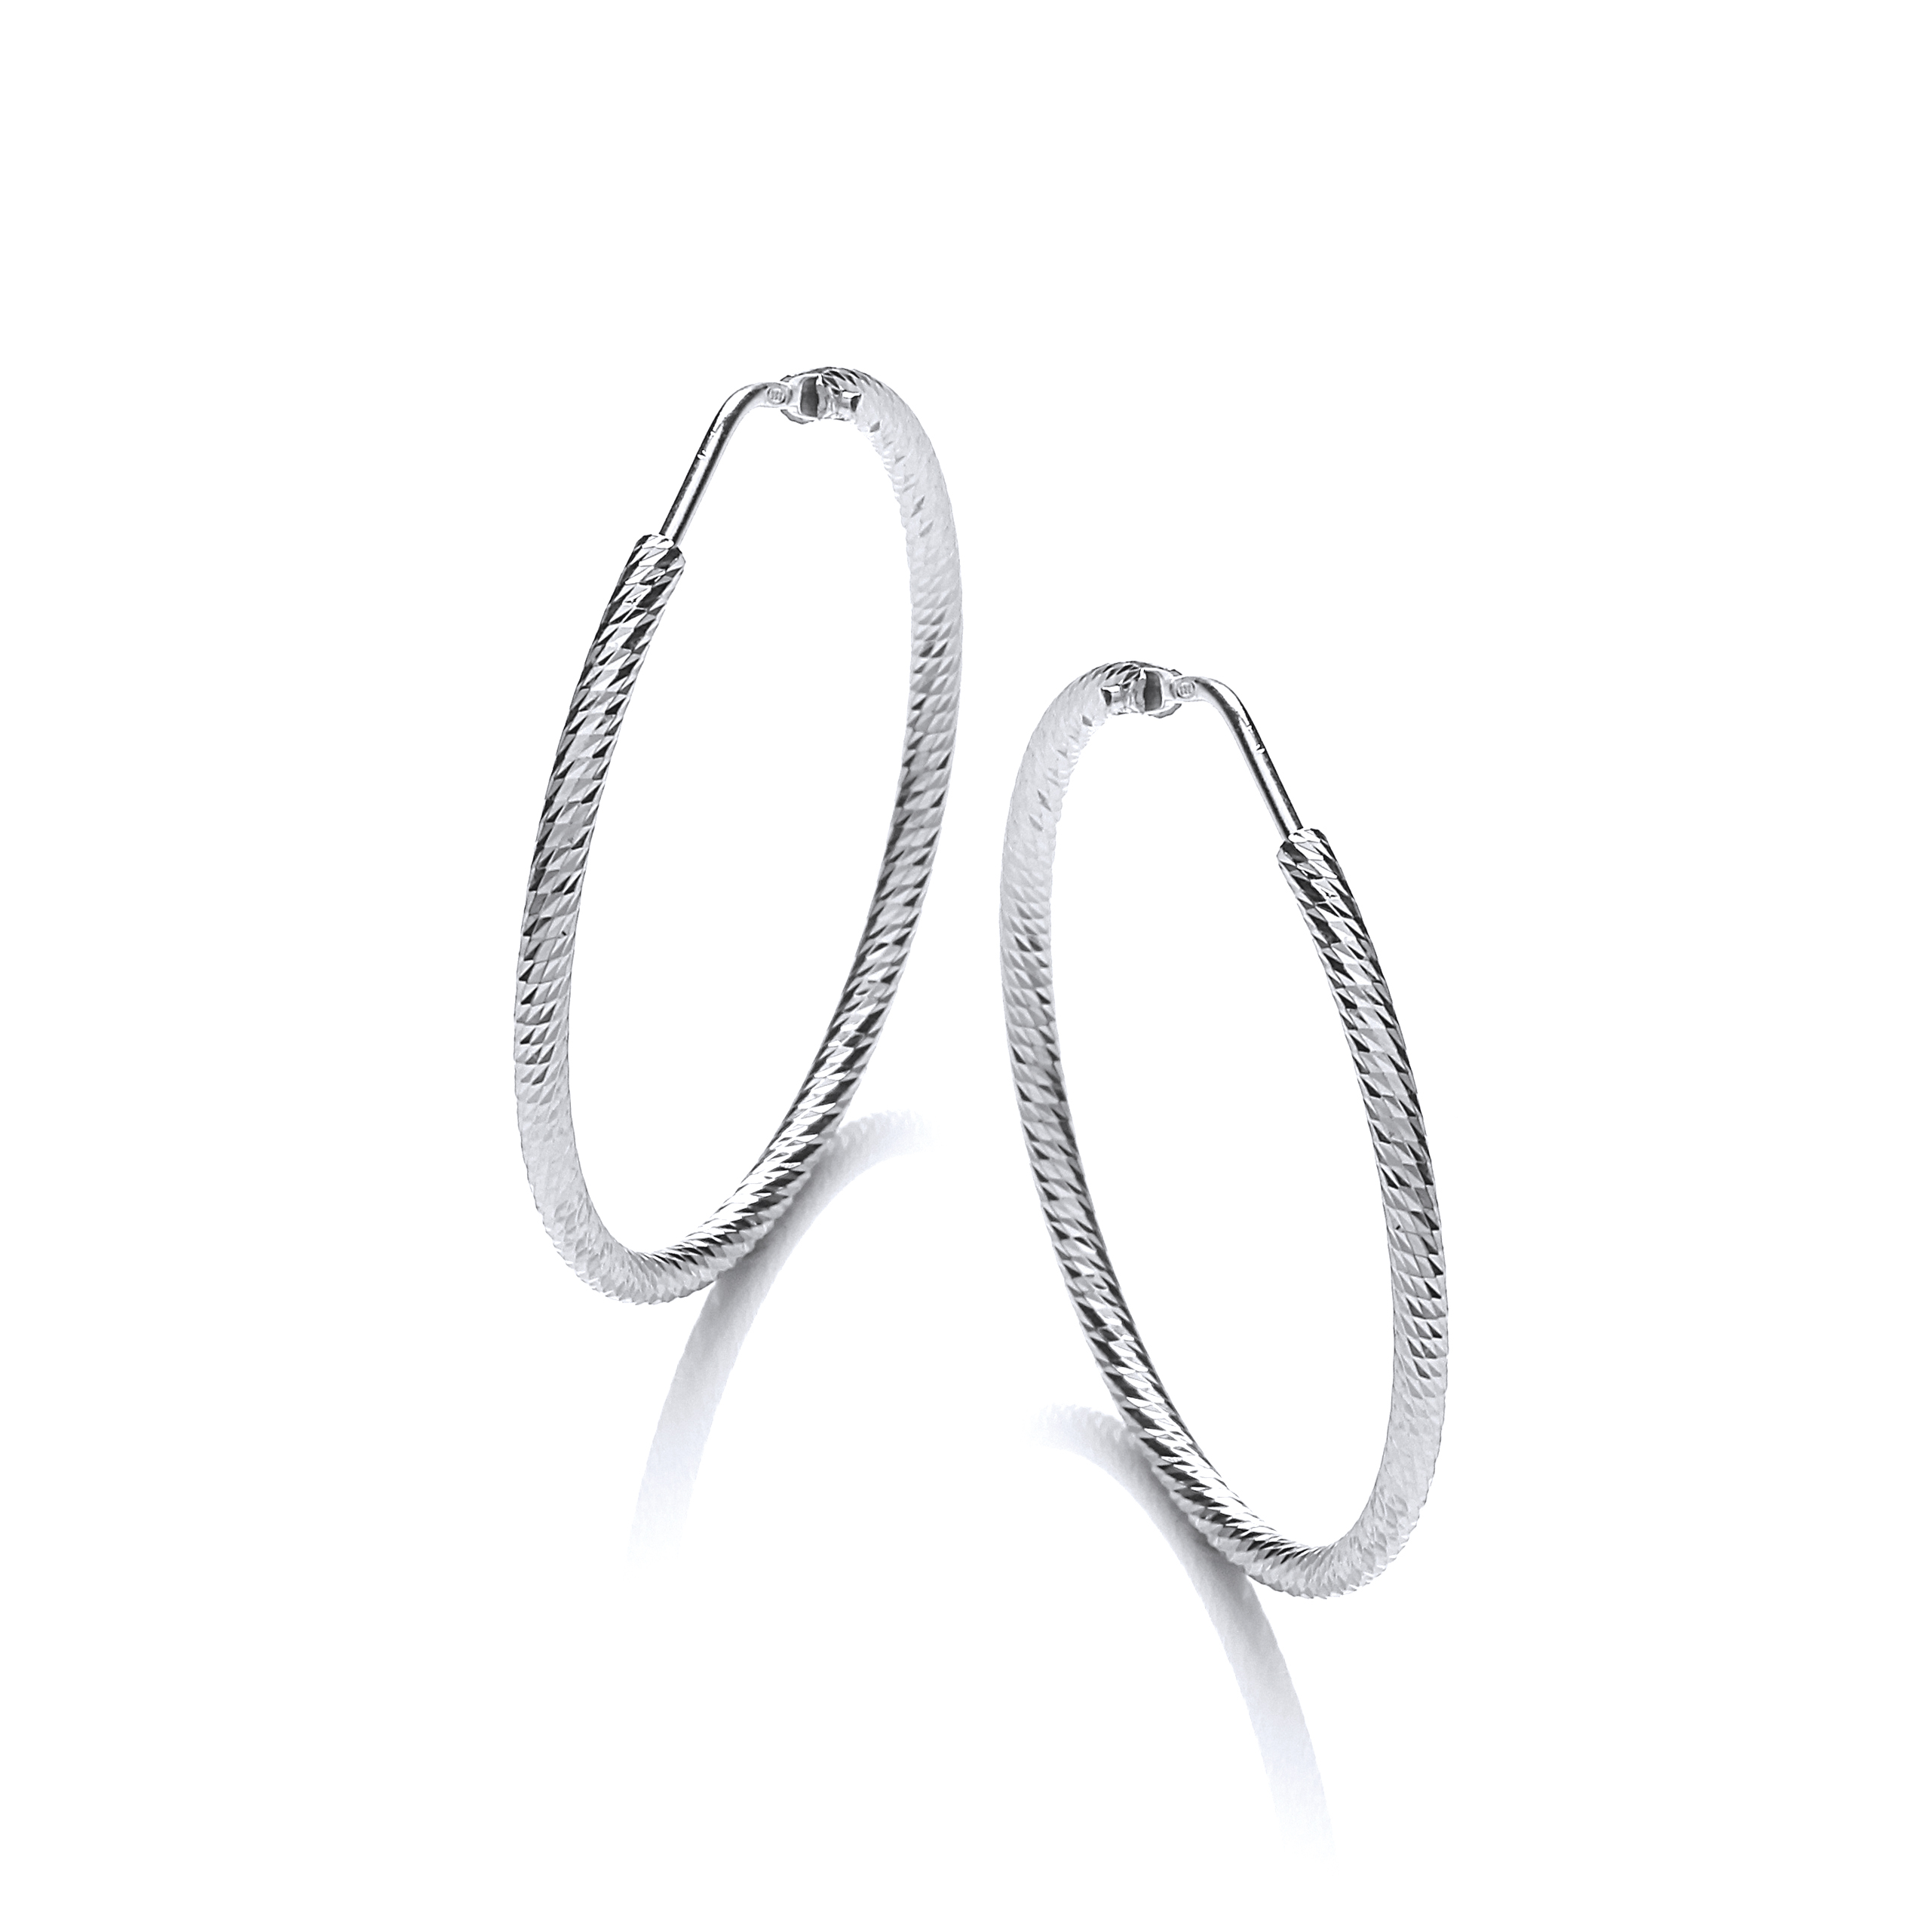 Silver Hoop Earrings www.daviddeyong.co.uk